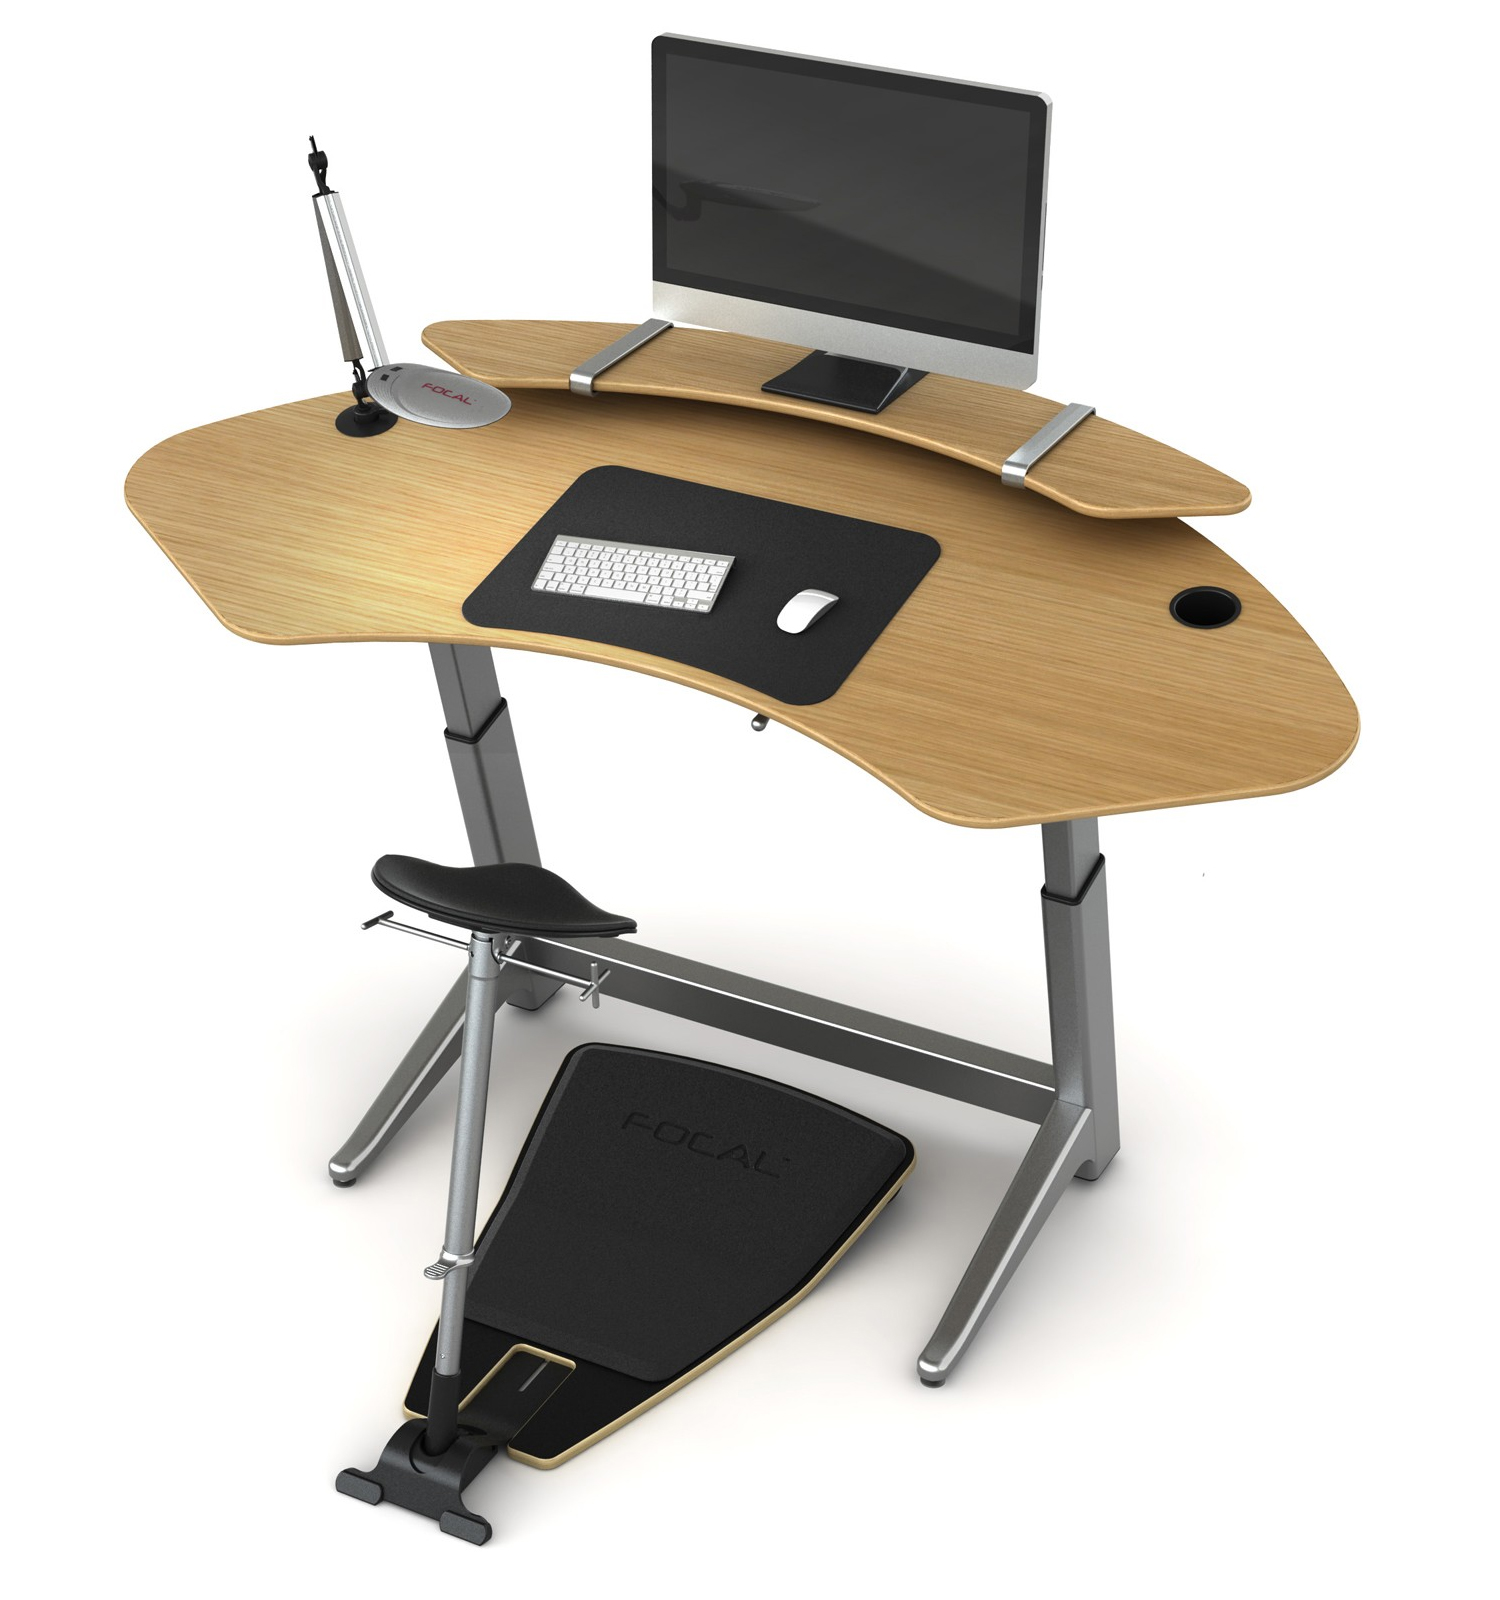 sit topper and just top ergo up legs furniture stand small standing that station mobile cheap down table work tall desktop moves adjustable narrow desk